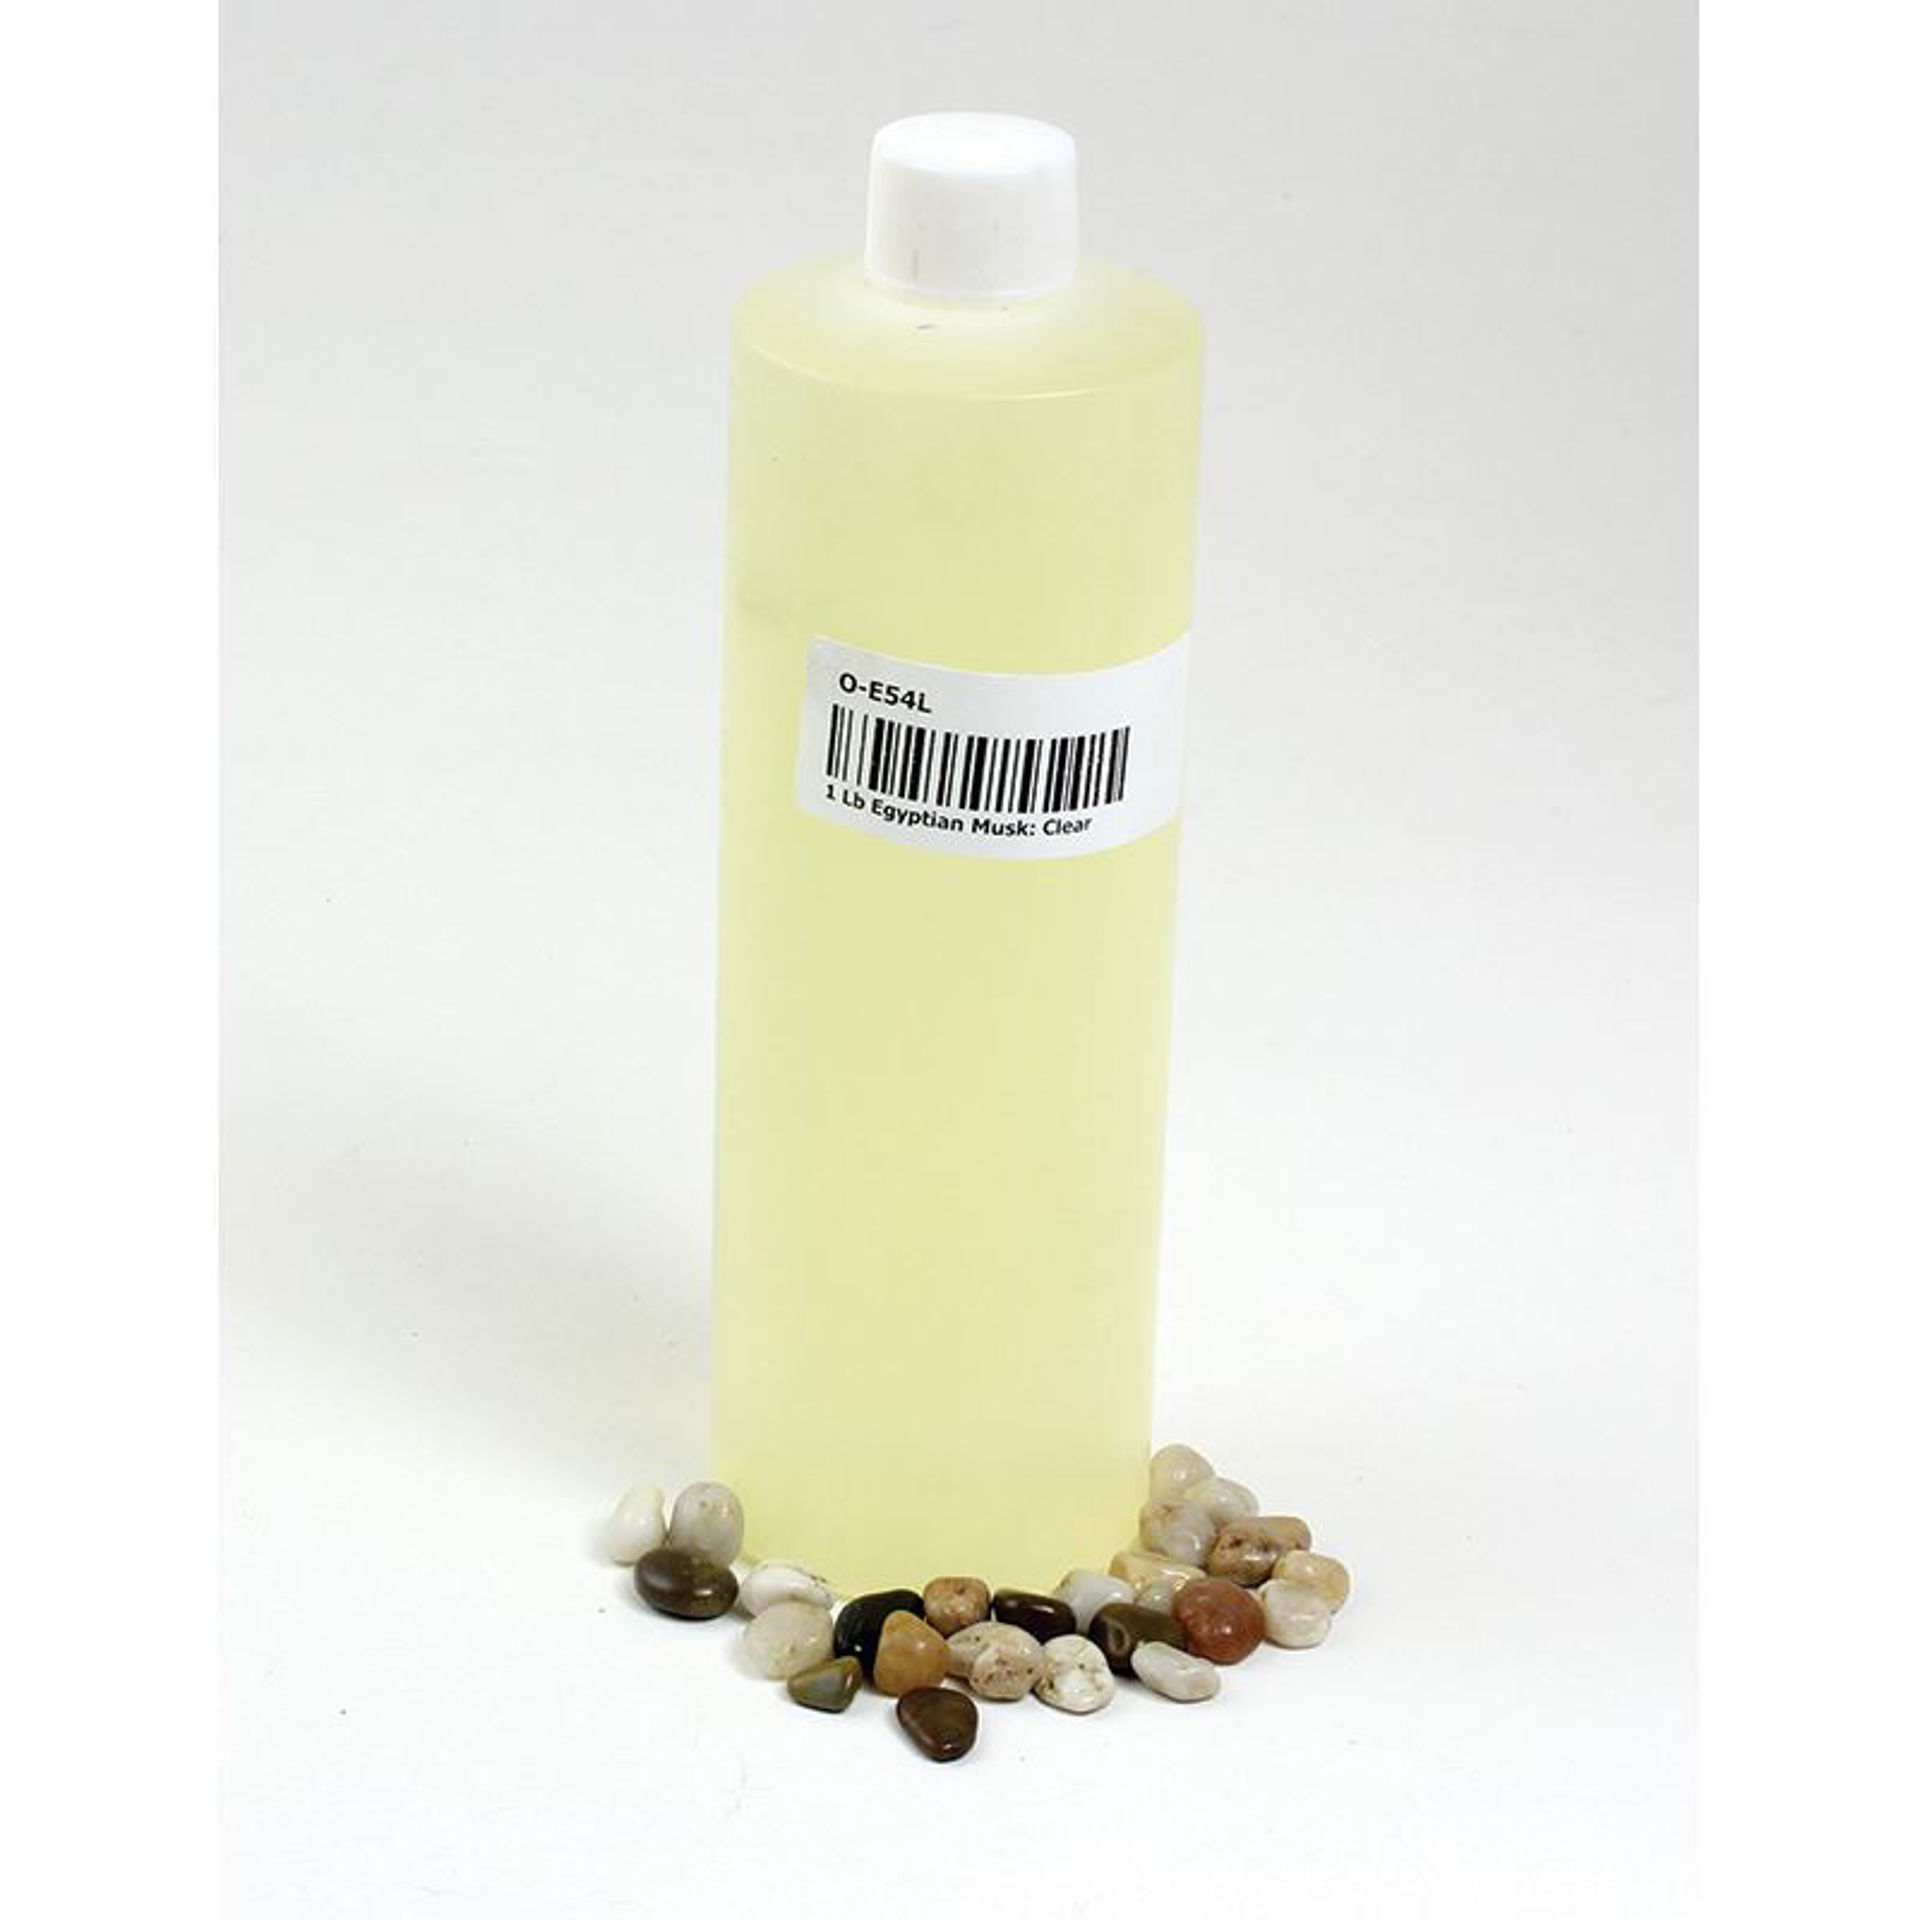 Picture of 1 Lb Egyptian Musk: Clear